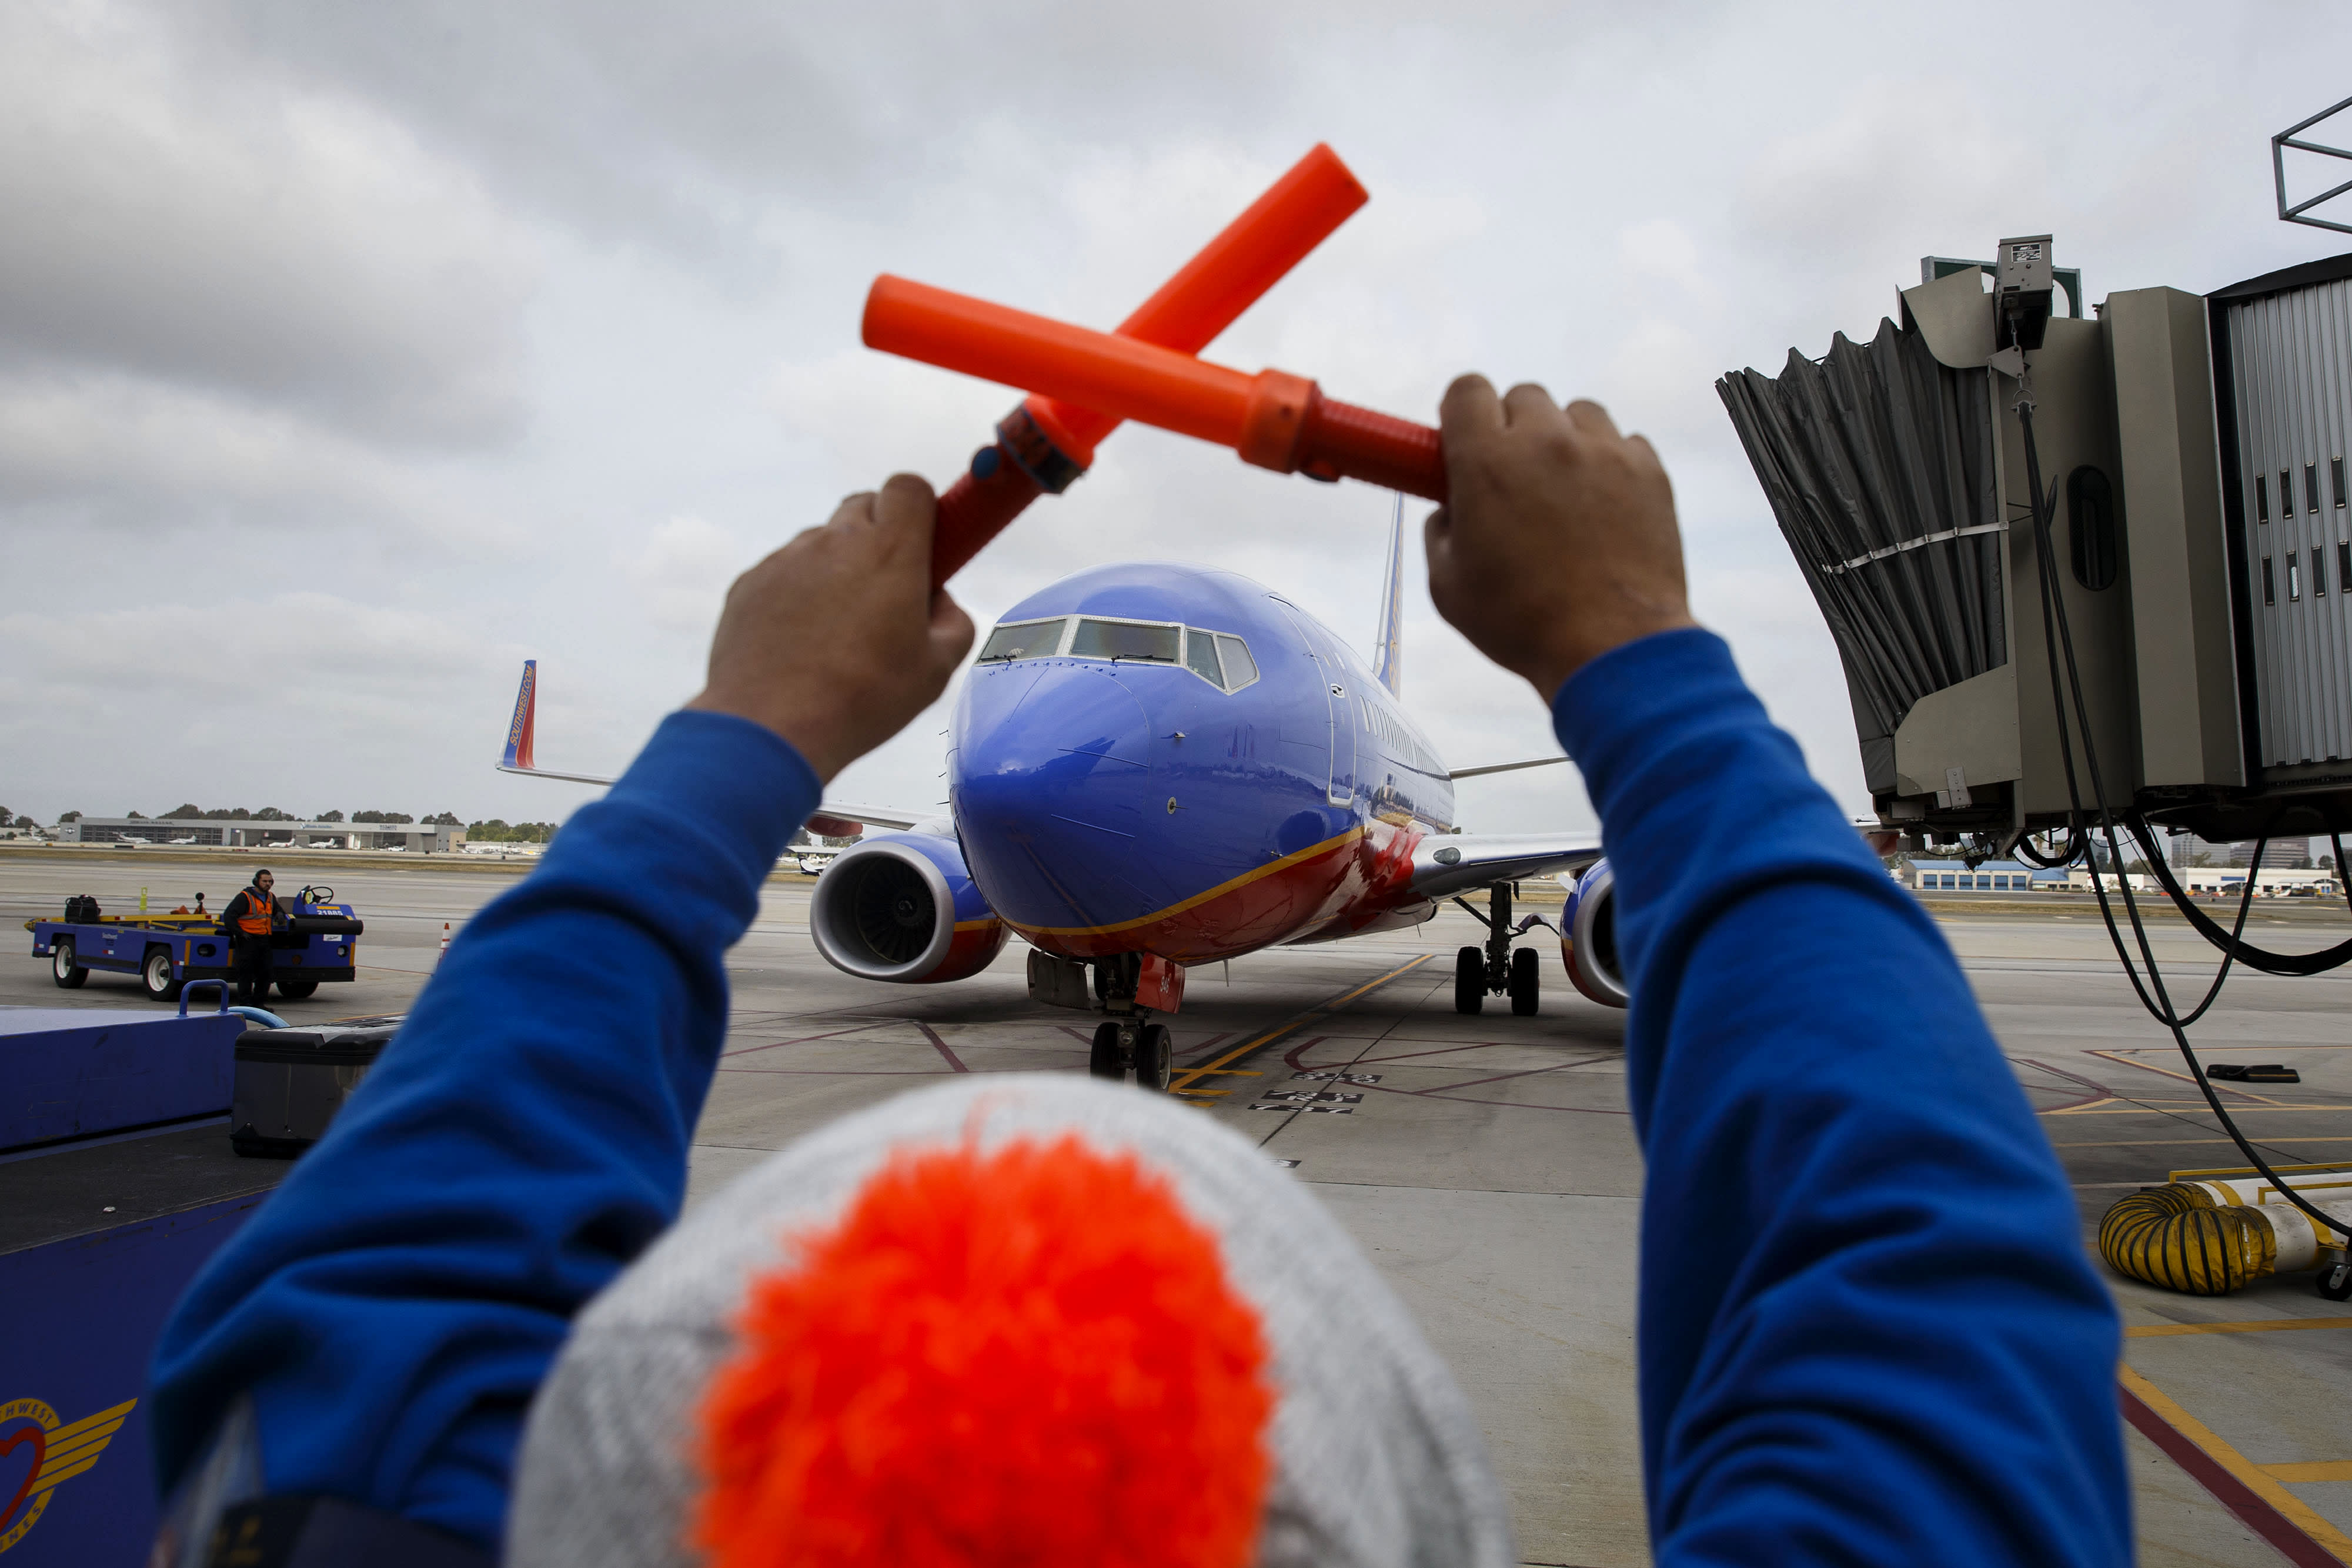 US airlines are bumping more travelers as Boeing 737 Max planes grounded